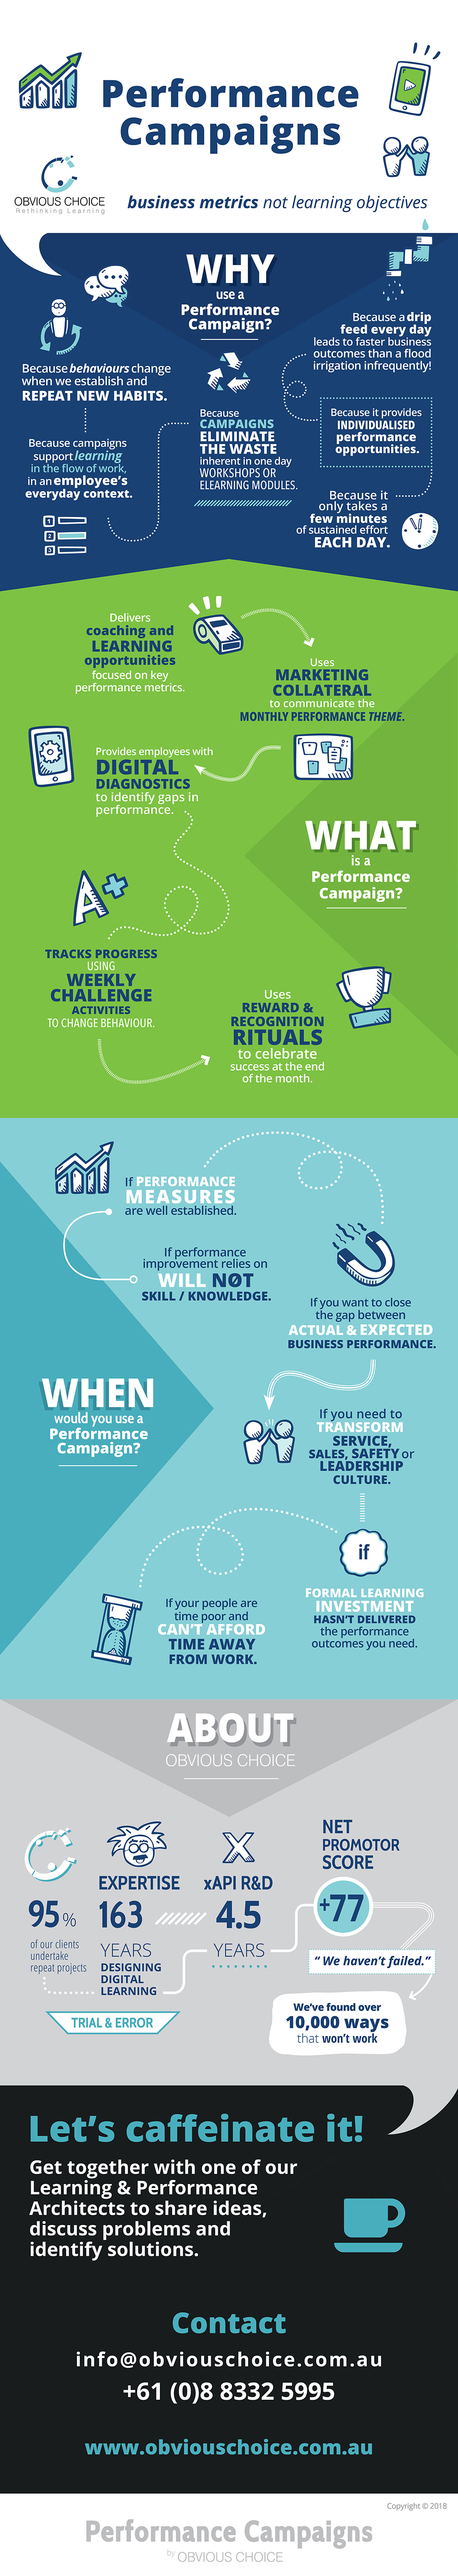 Performance Campaigns Infographic Obvious Choice